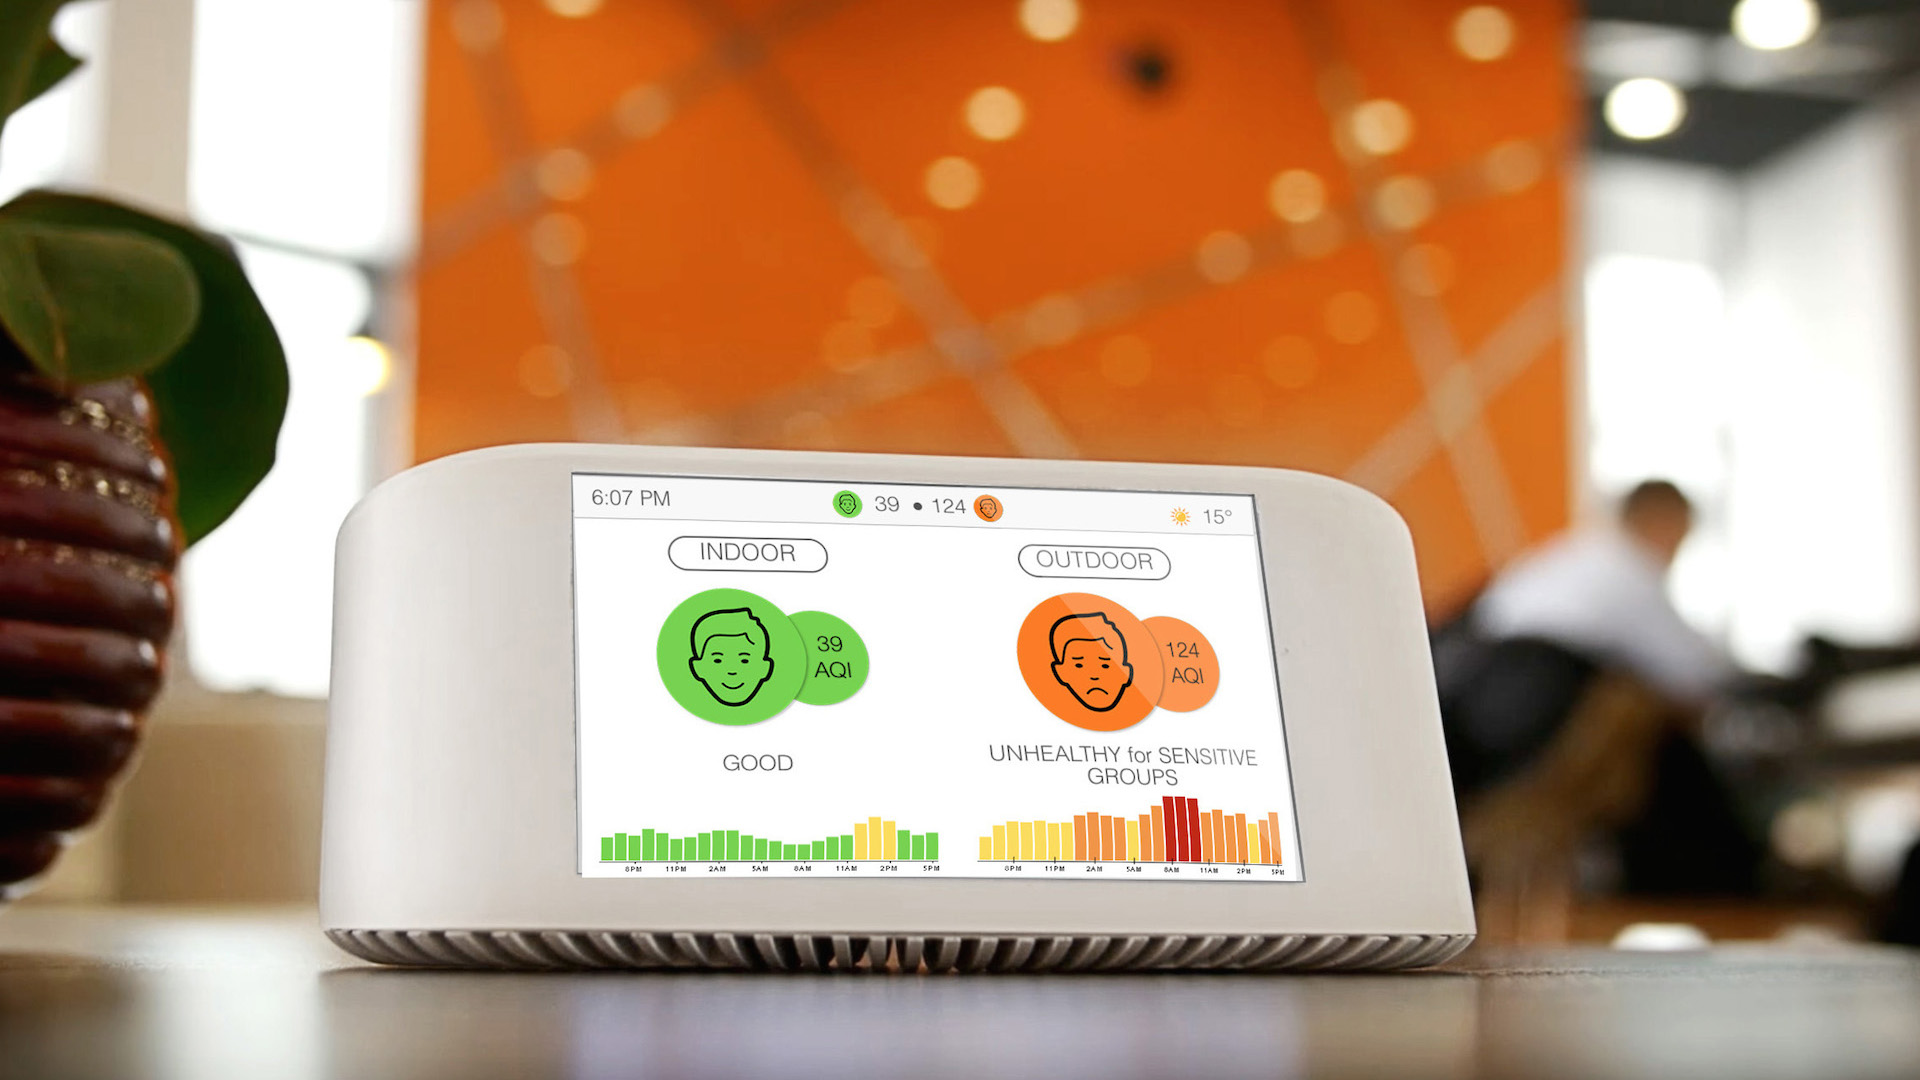 This pint-sized monitor helps you determine the air pollution levels in your immediate environment